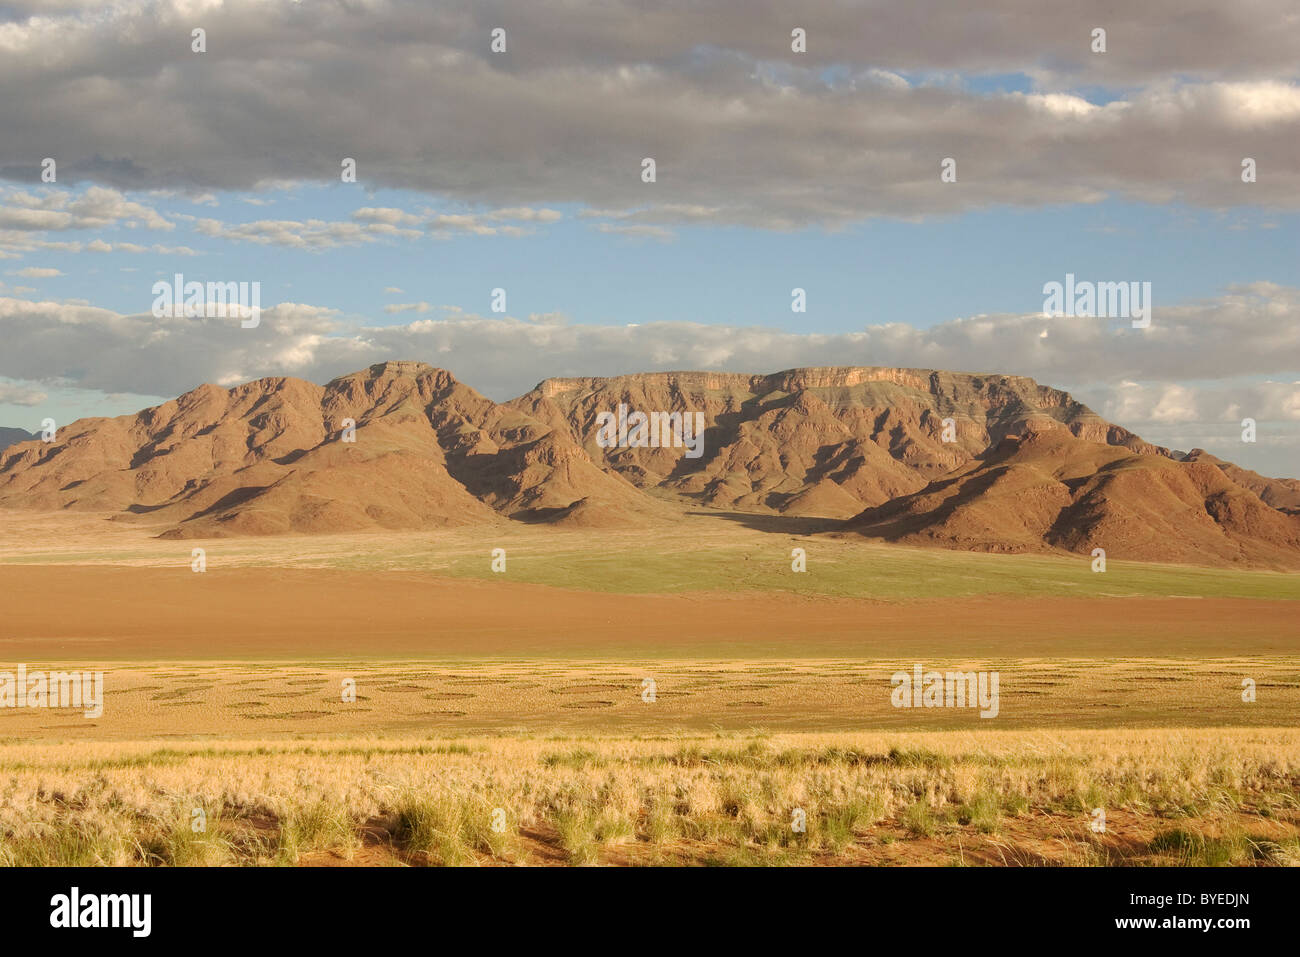 NamibRand Nature Reserve during the rainy season with green vegetation at the edge of the Namib Desert - Stock Image